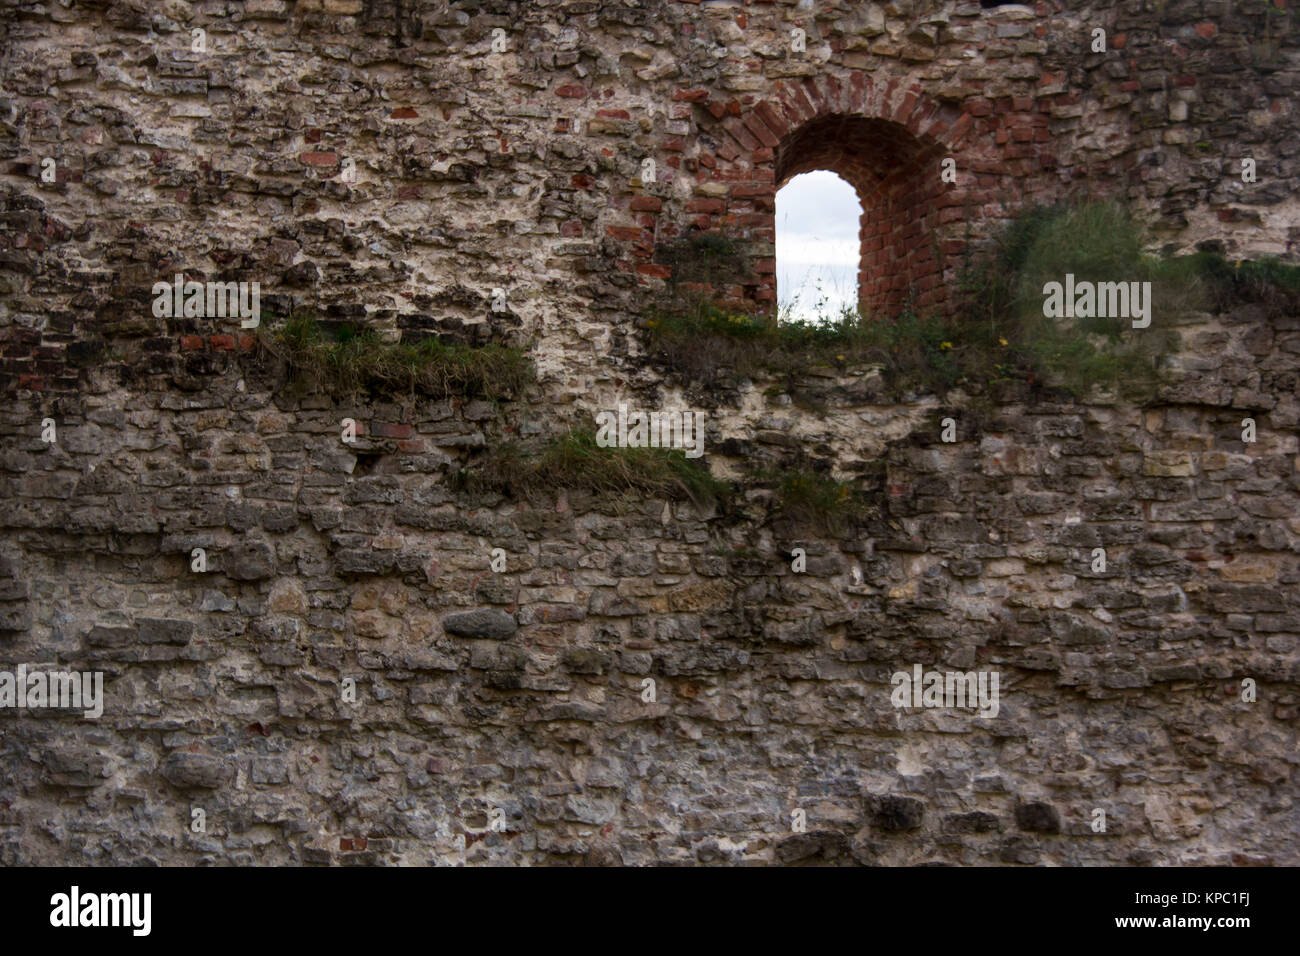 Old Brick Textures of the Livonia Order Castle Was Built in the Middle of the 15th Century. Bauska Latvia - Stock Image